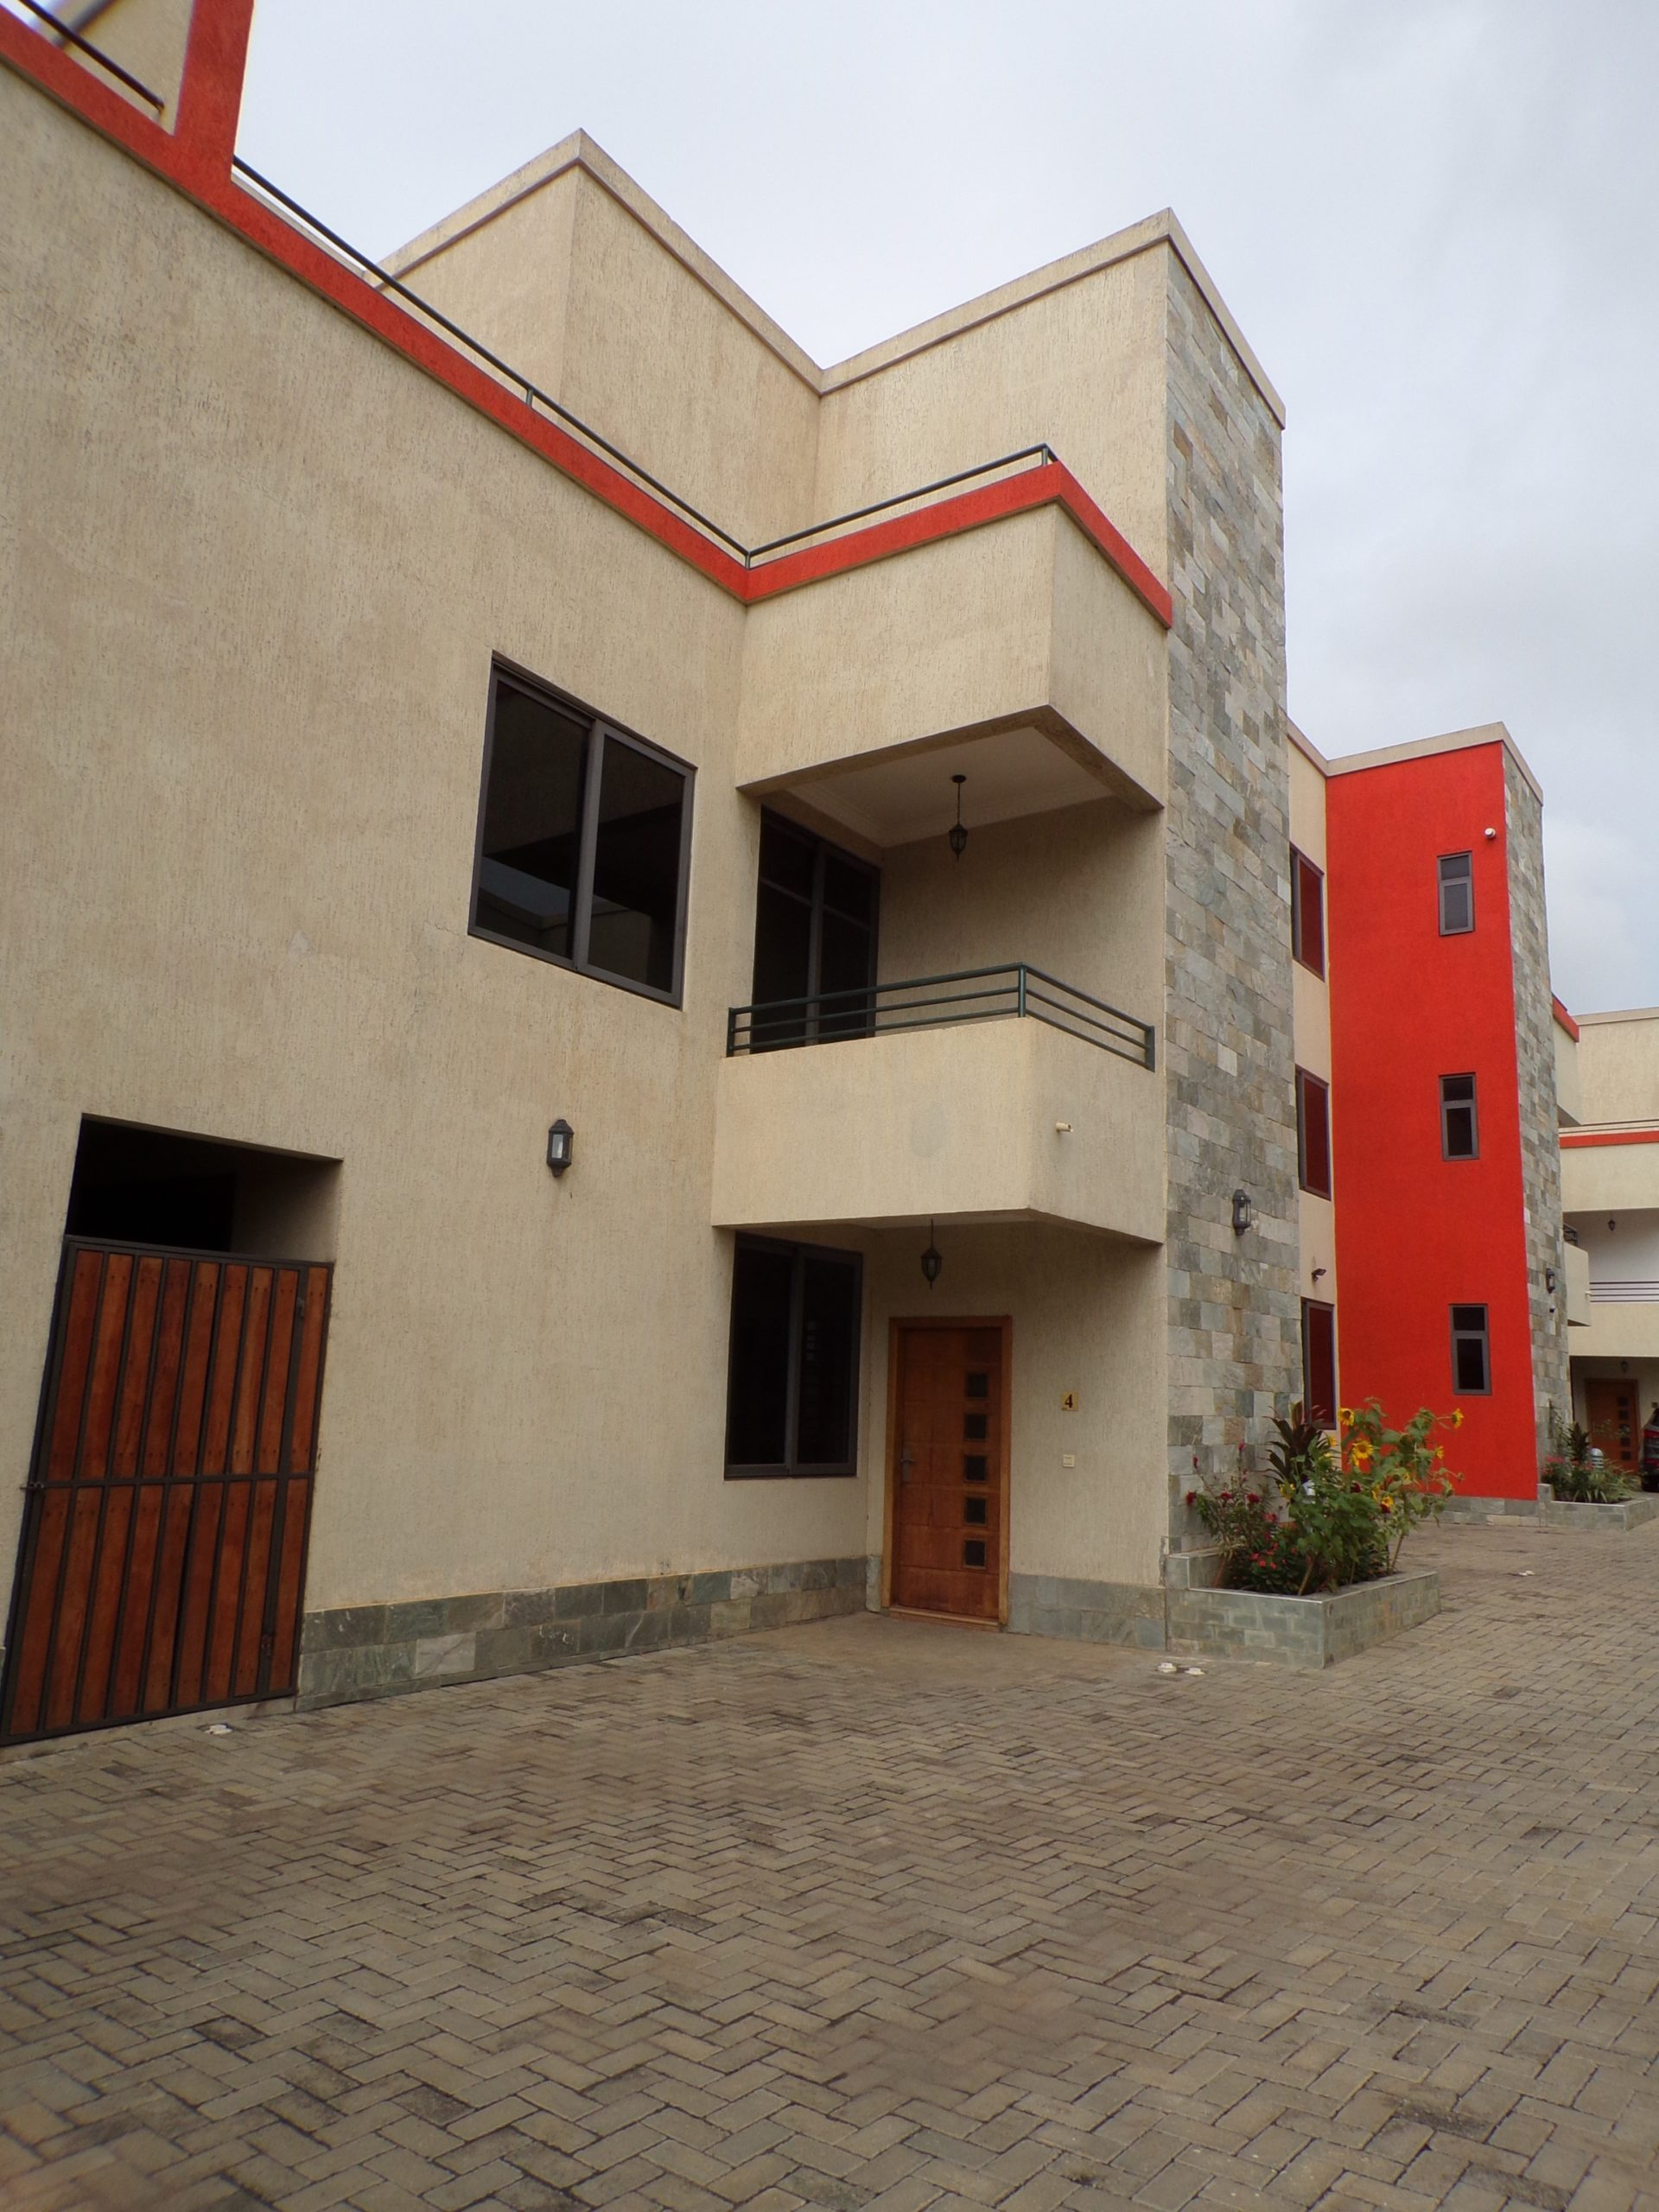 2 bedroom furnished apartment for rent in Roman Ridge